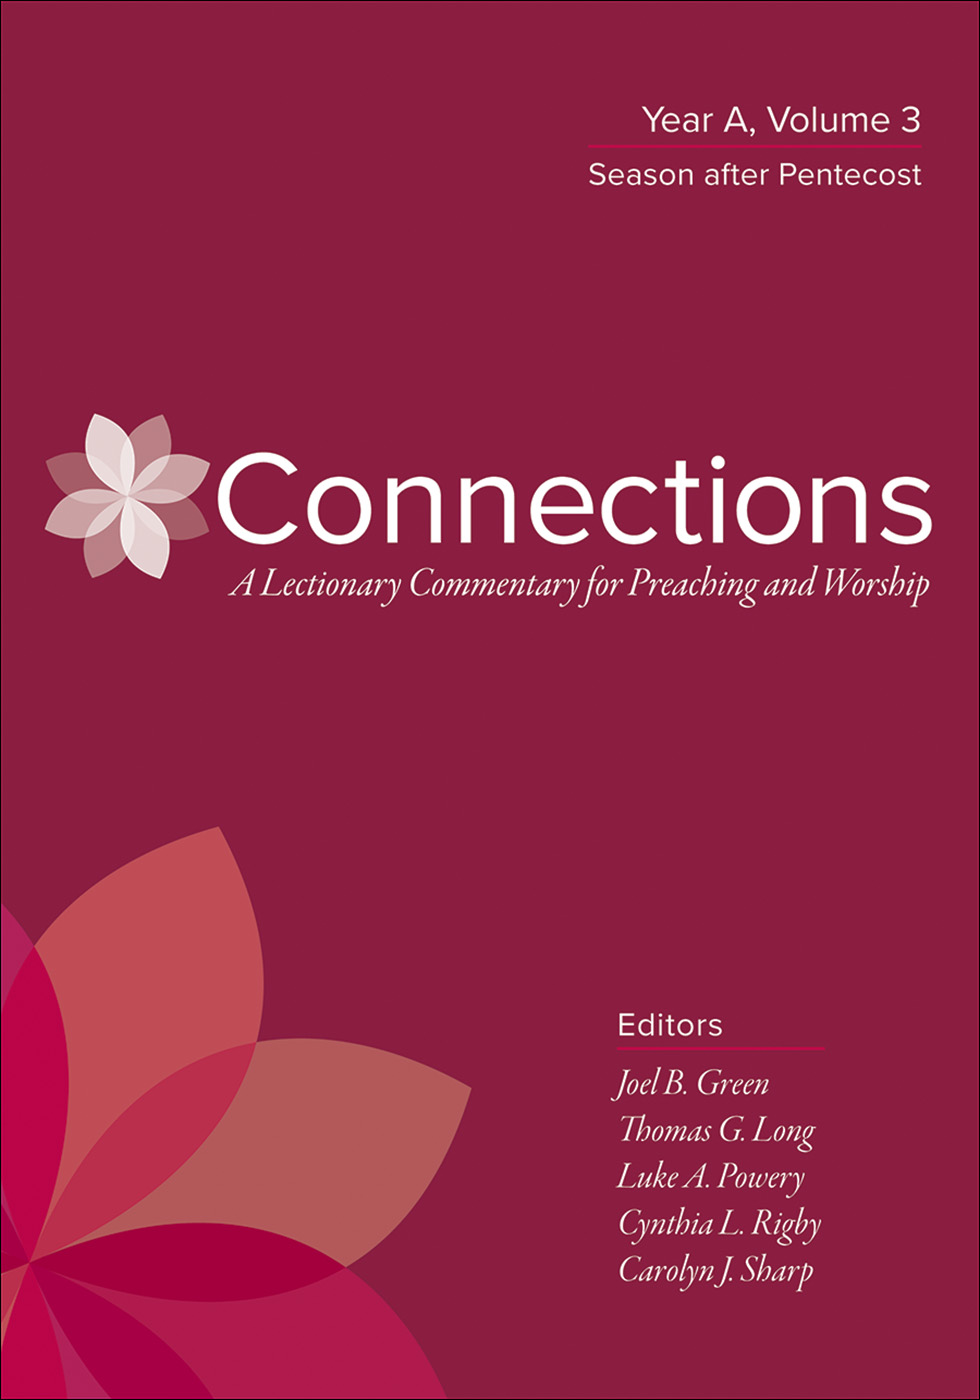 Connections: Year A, Volume 3